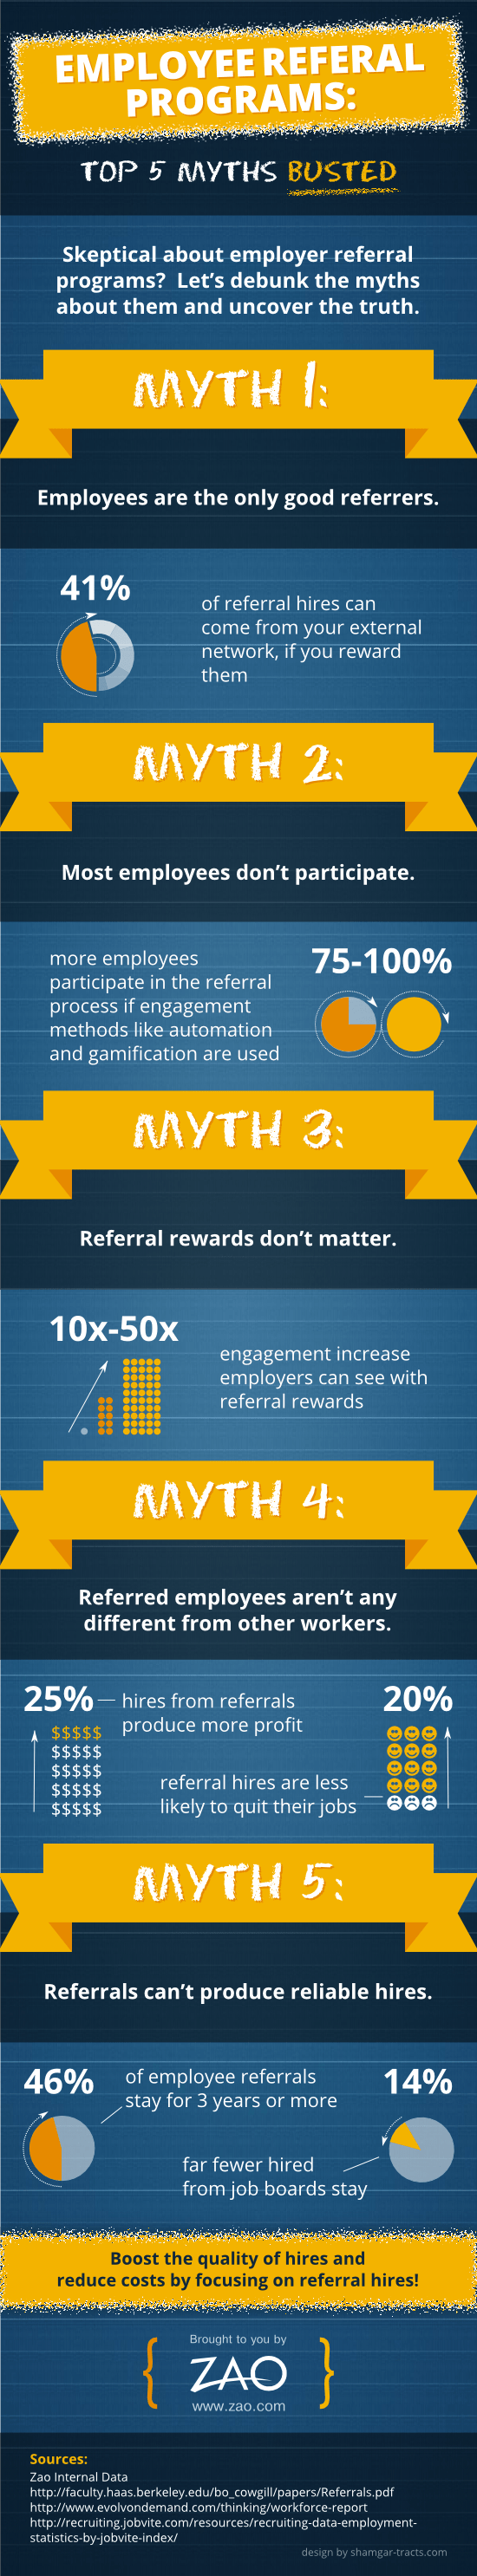 Employee Referral Schemes: Top 5 Myths Debunked [INFOGRAPHIC]